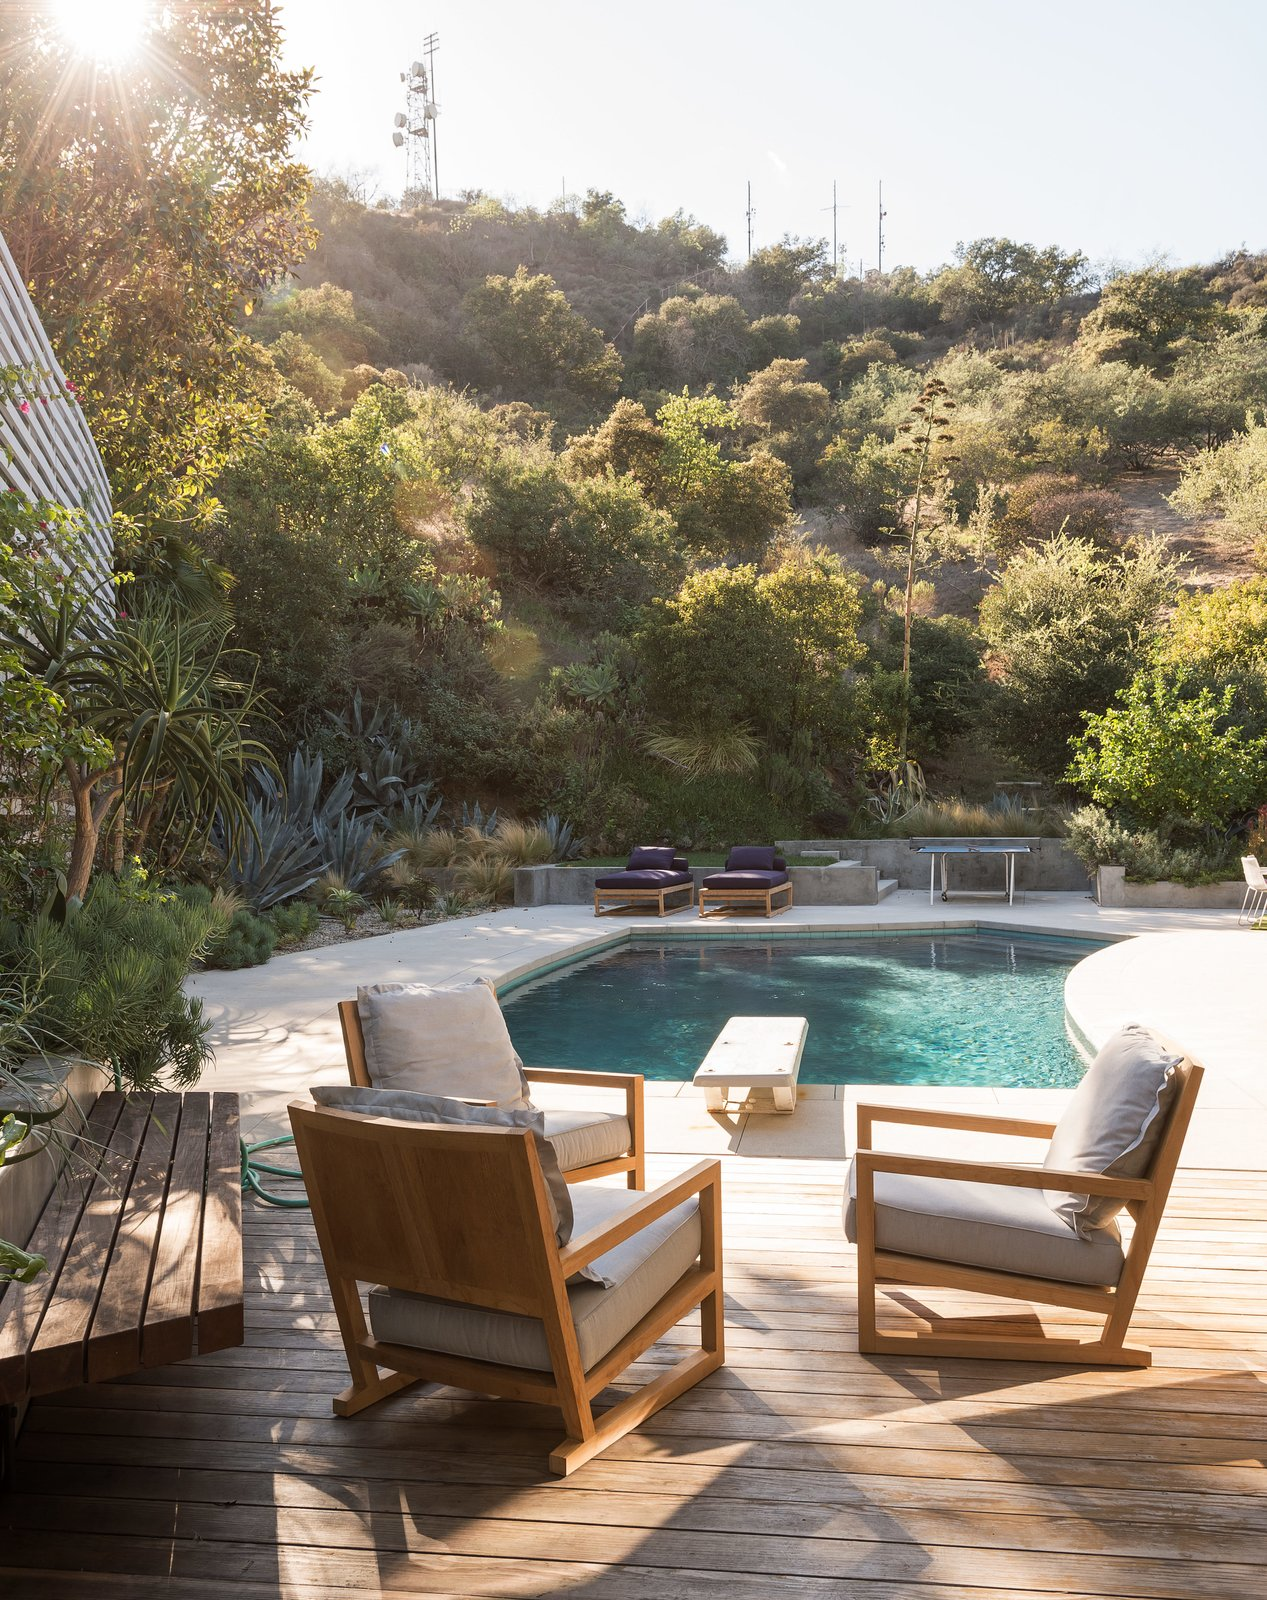 Low retaining walls form a subtle barrier between the backyard and the surrounding vegetation. Mandy Graham designed the armchairs and lounges.  Photo 8 of 25 in 25 Blissful Backyards from Home Ideas